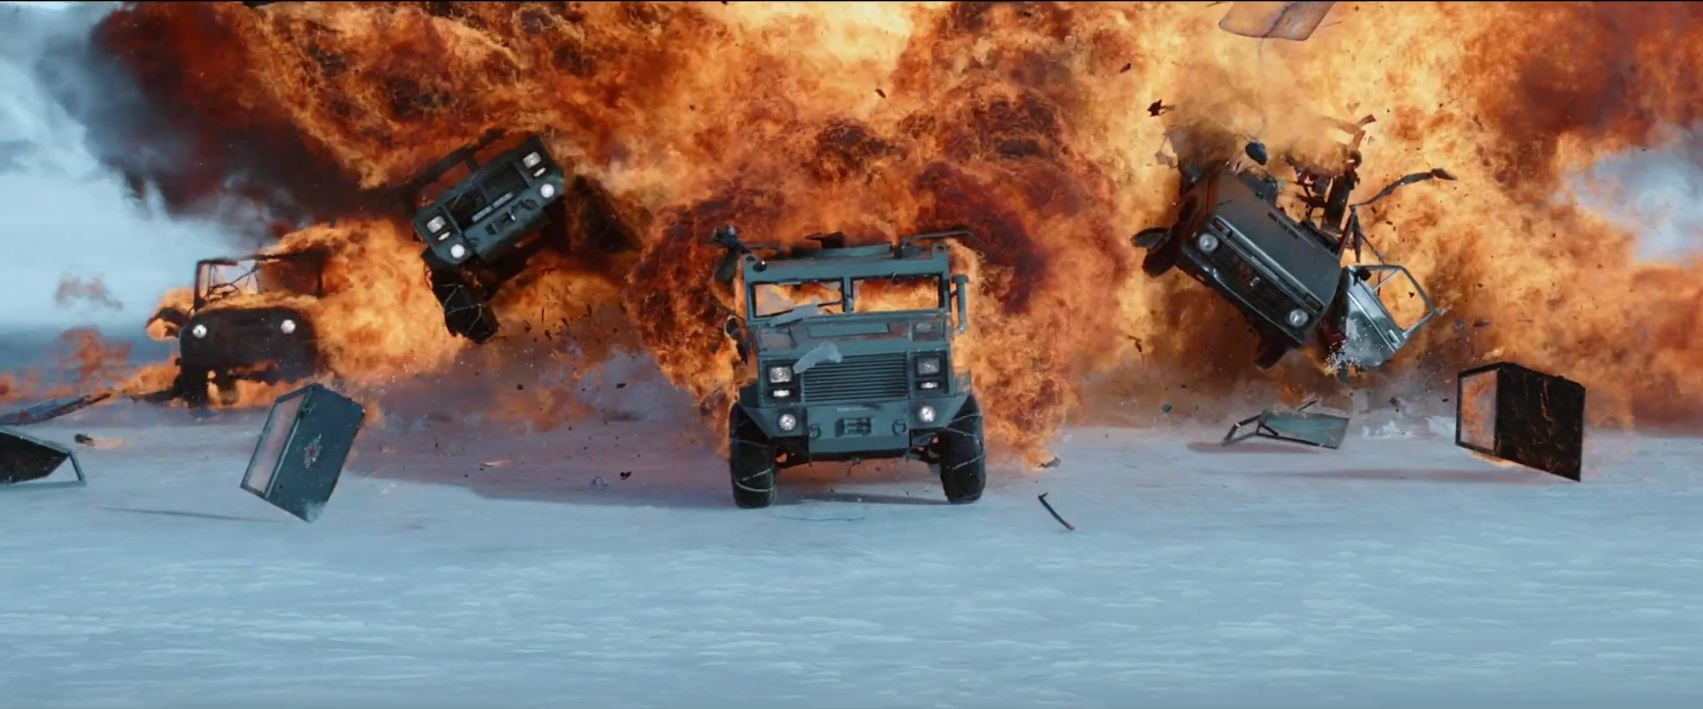 Photo of the turnaround that will break the box office? First glimpse of the new Fast and Furious movie